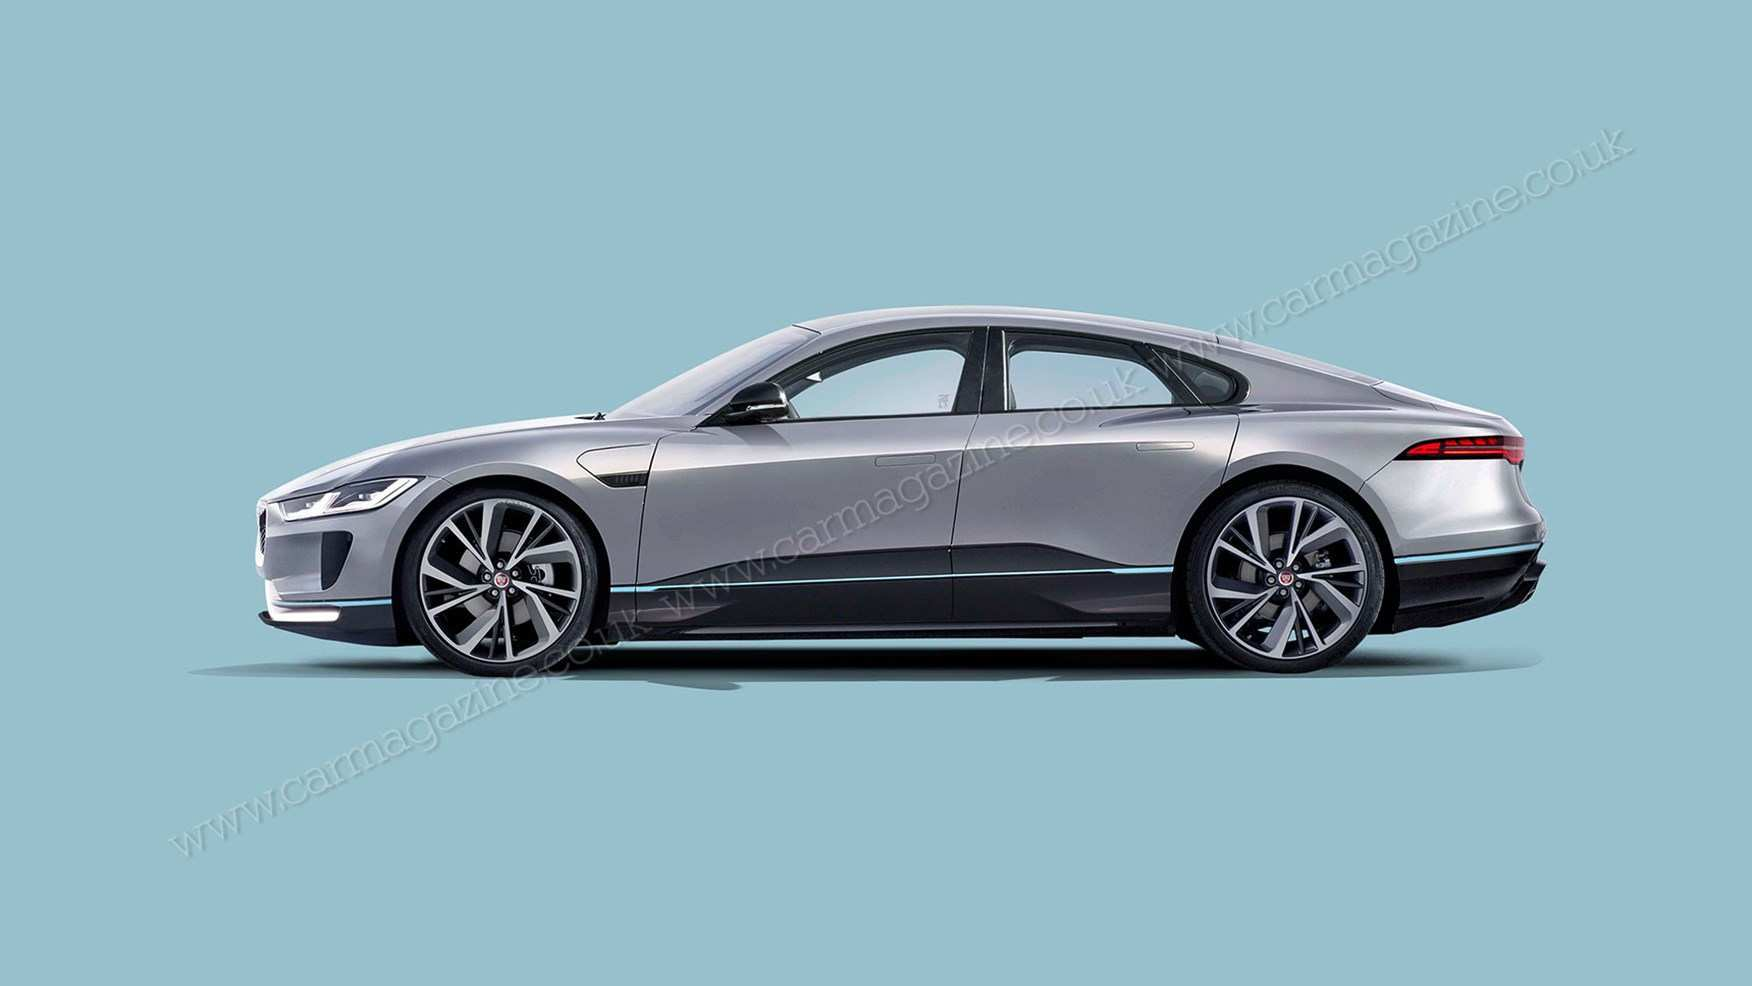 35 New Jaguar Xj 2020 Spy Price Design And Review